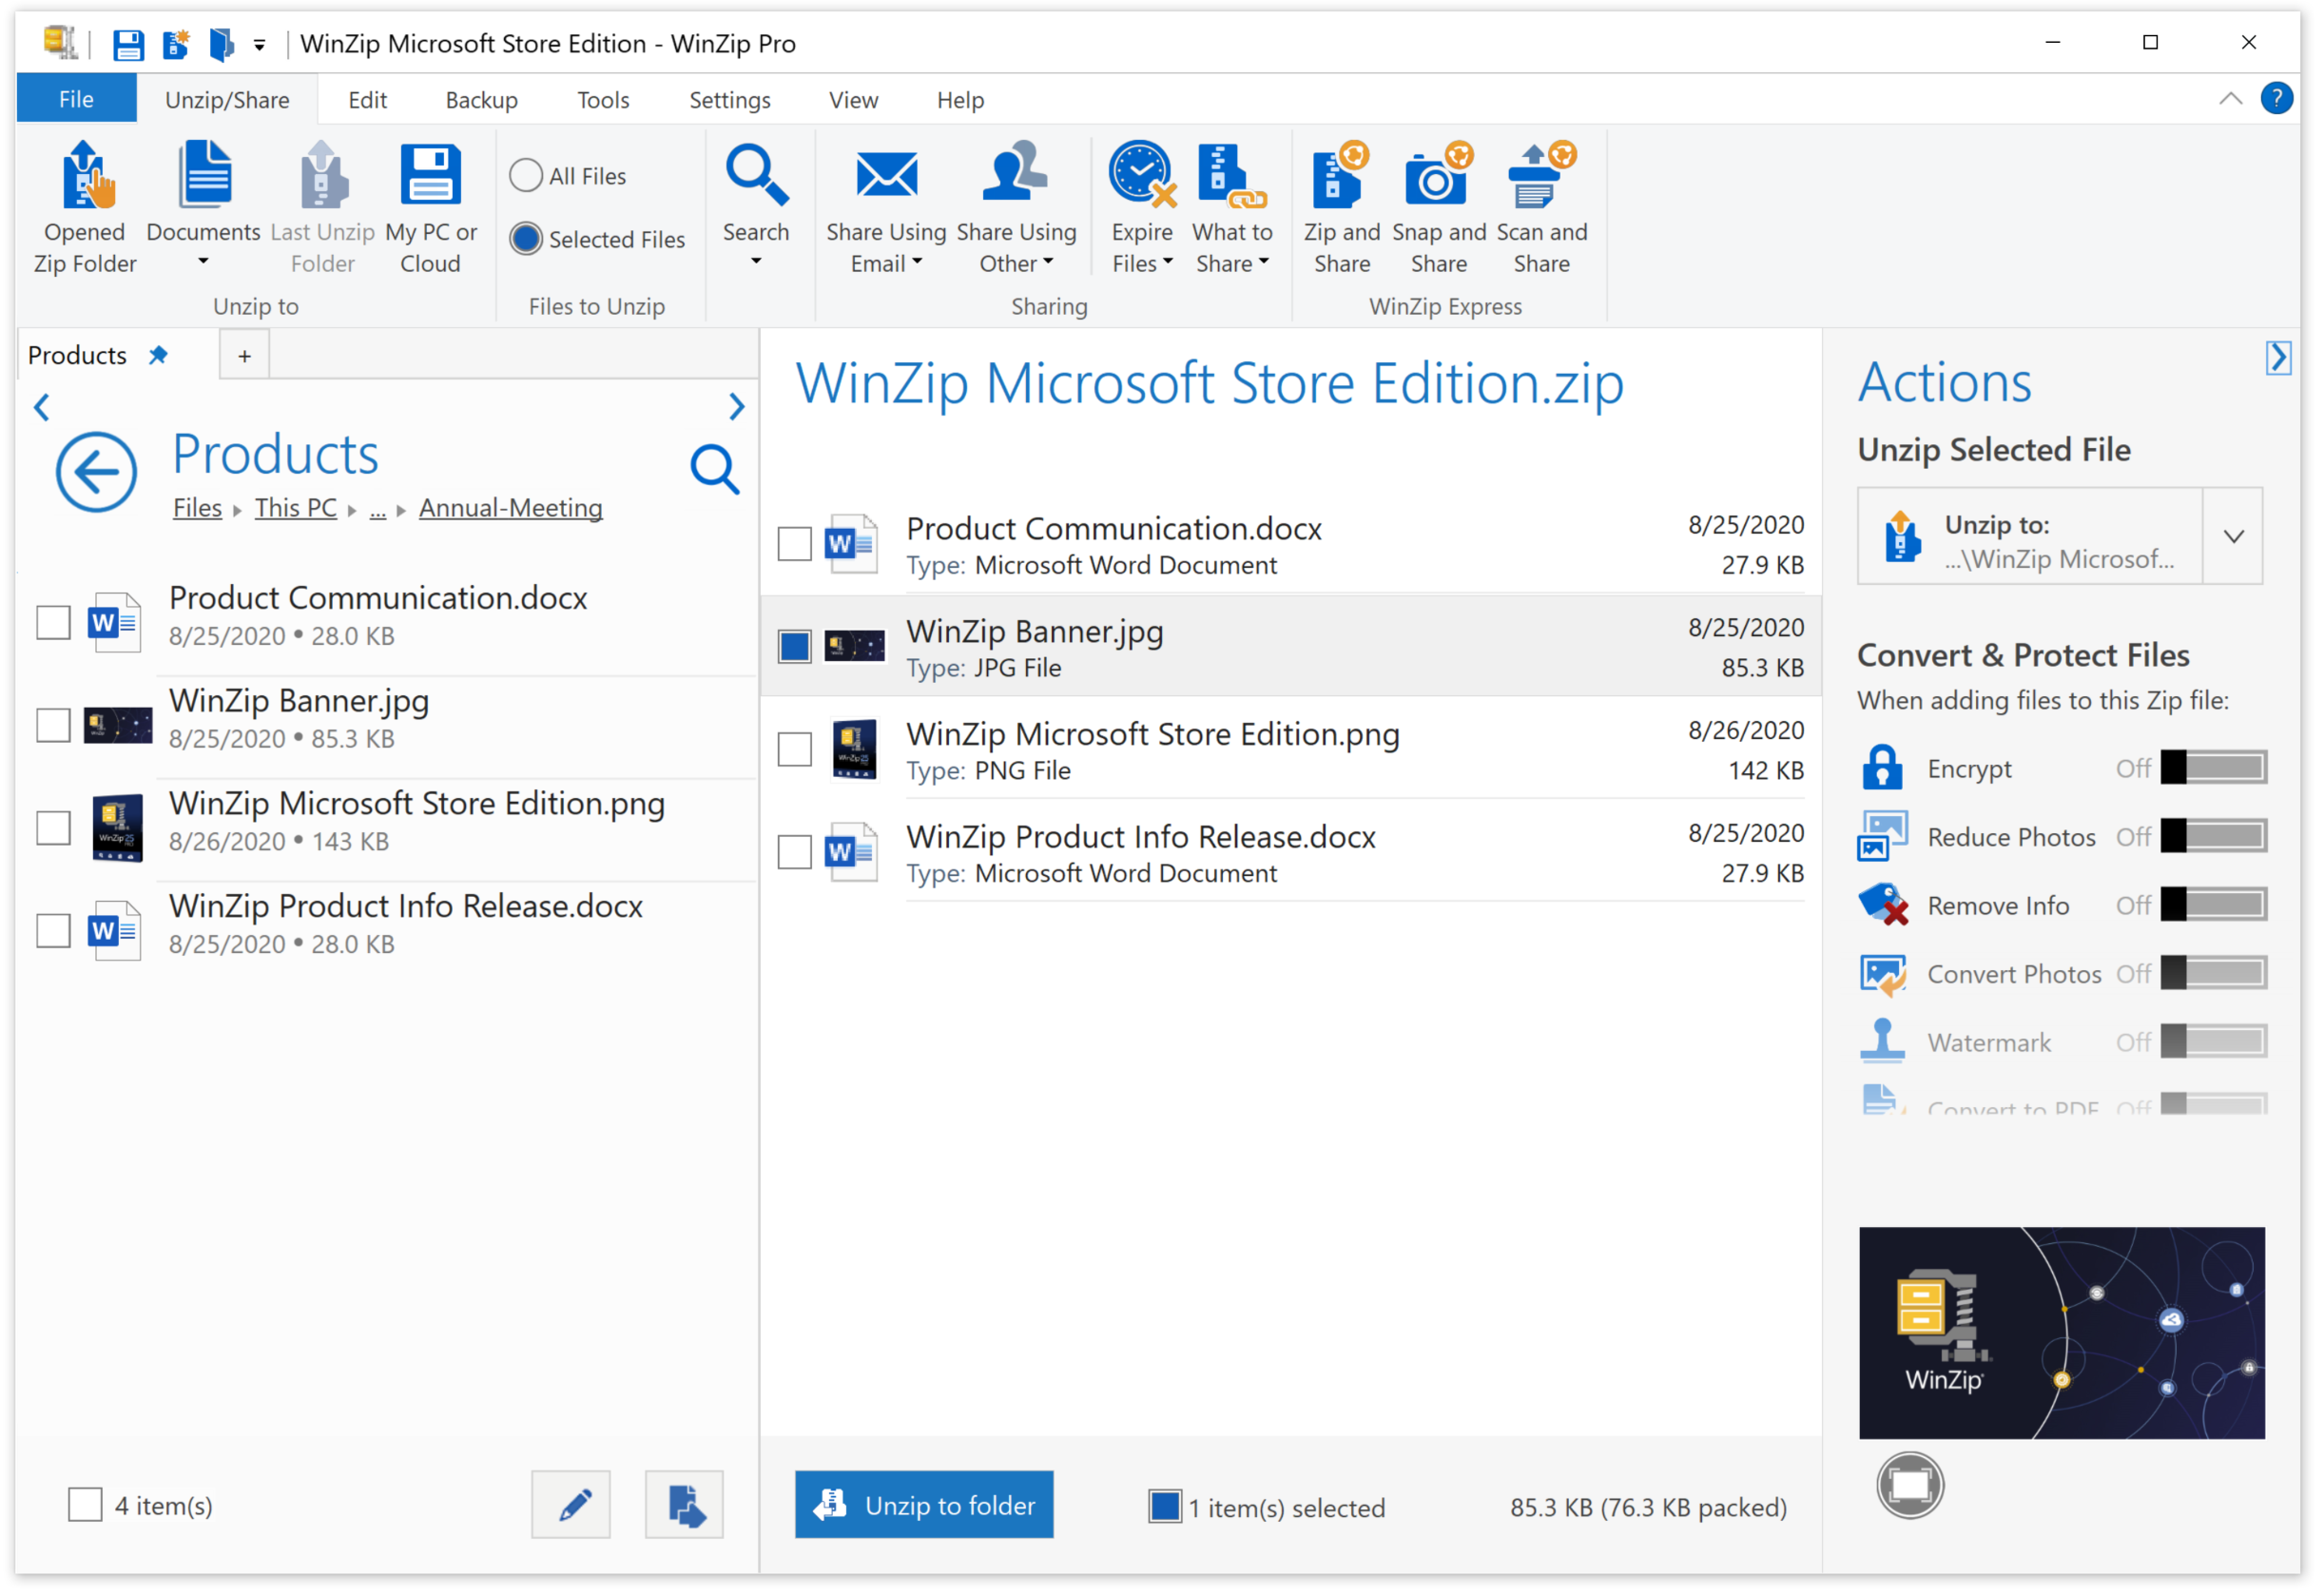 WinZip Microsoft Store Edition Adds Support for Microsoft Teams